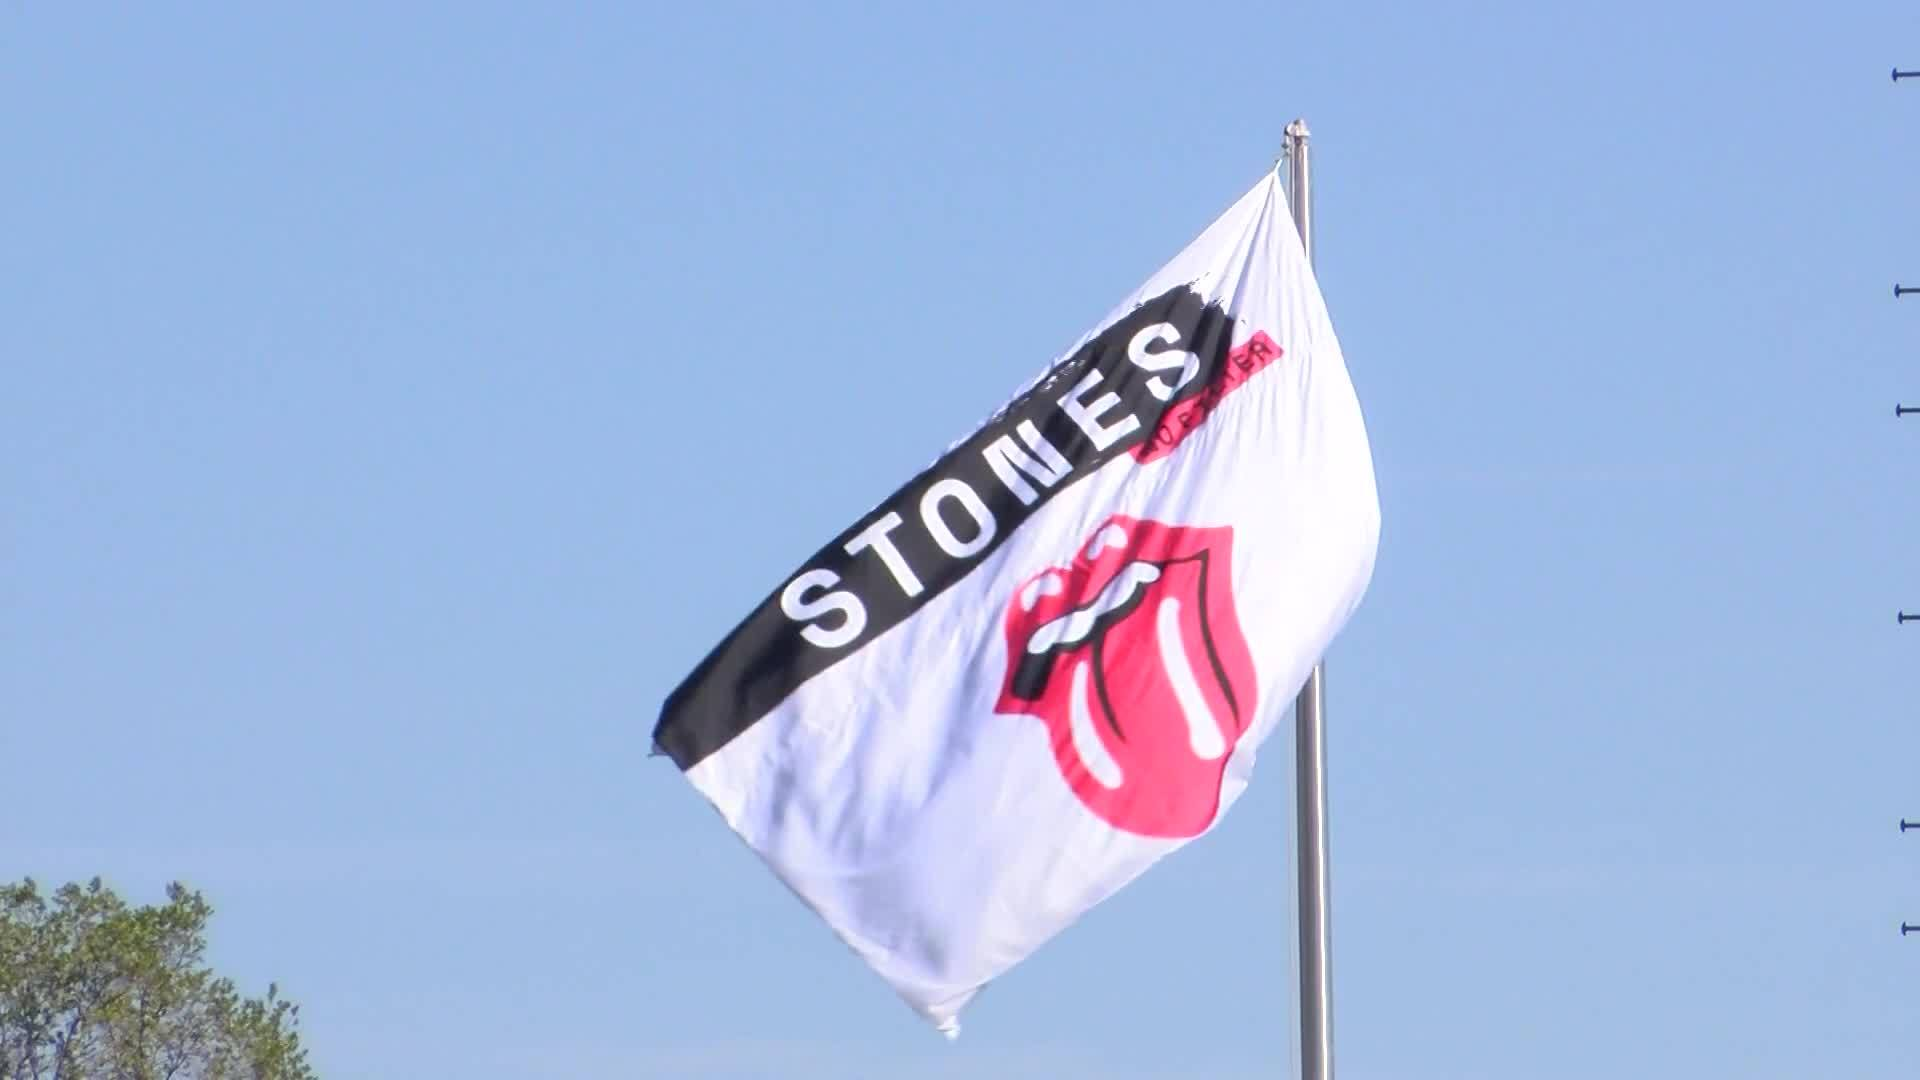 A's and Rolling Stones fans unite